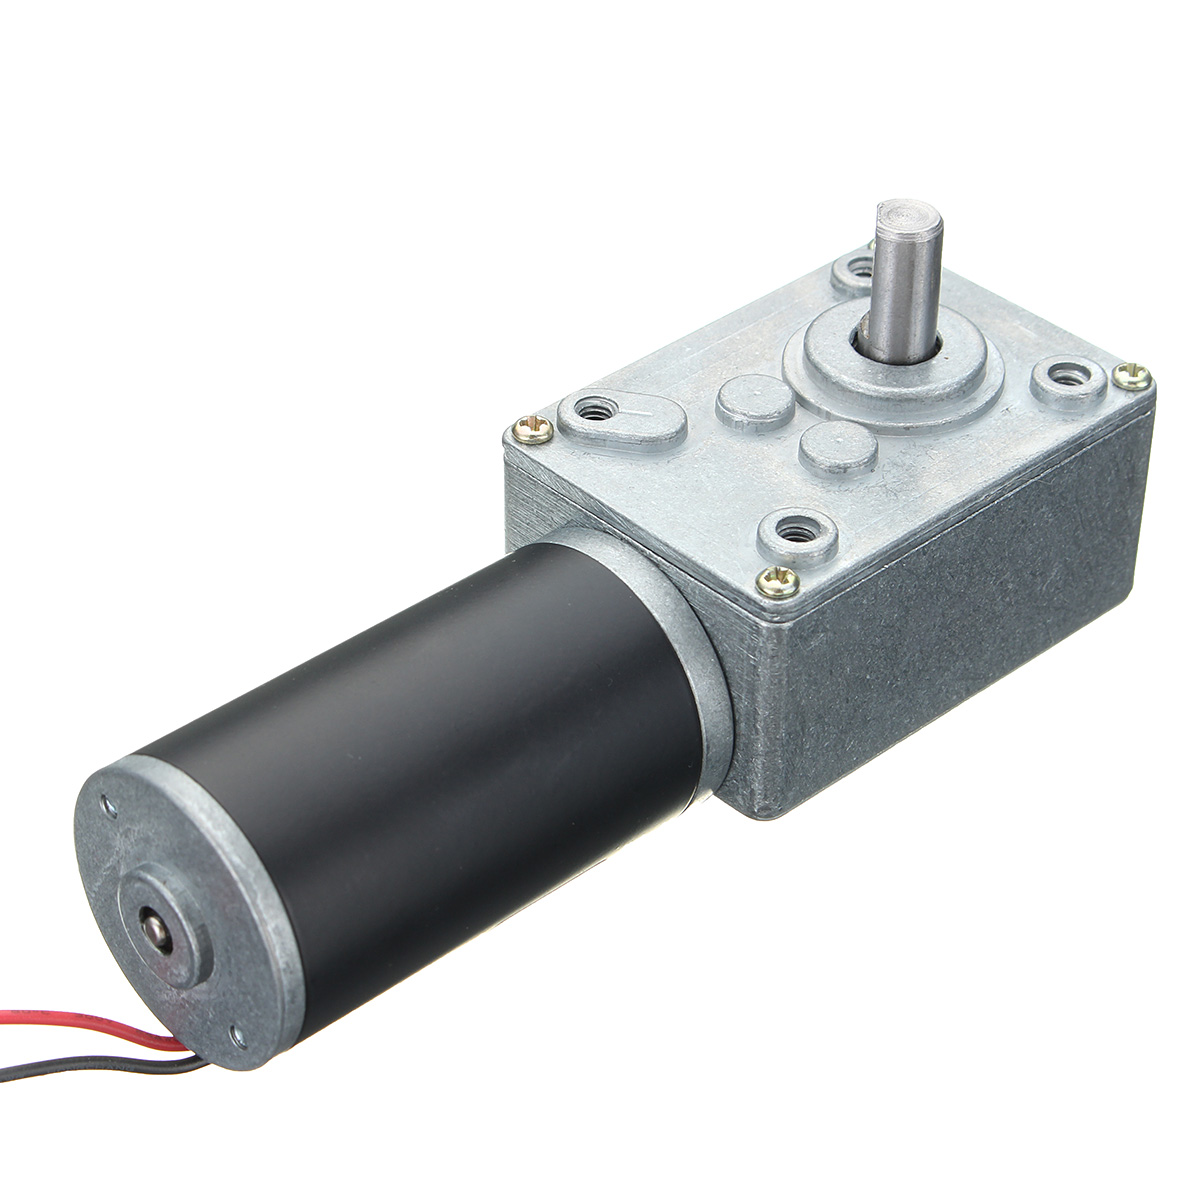 31ZY DC 12V/24V 80RPM Turbo Gear Motor DC Reducer Worm Geared Motor